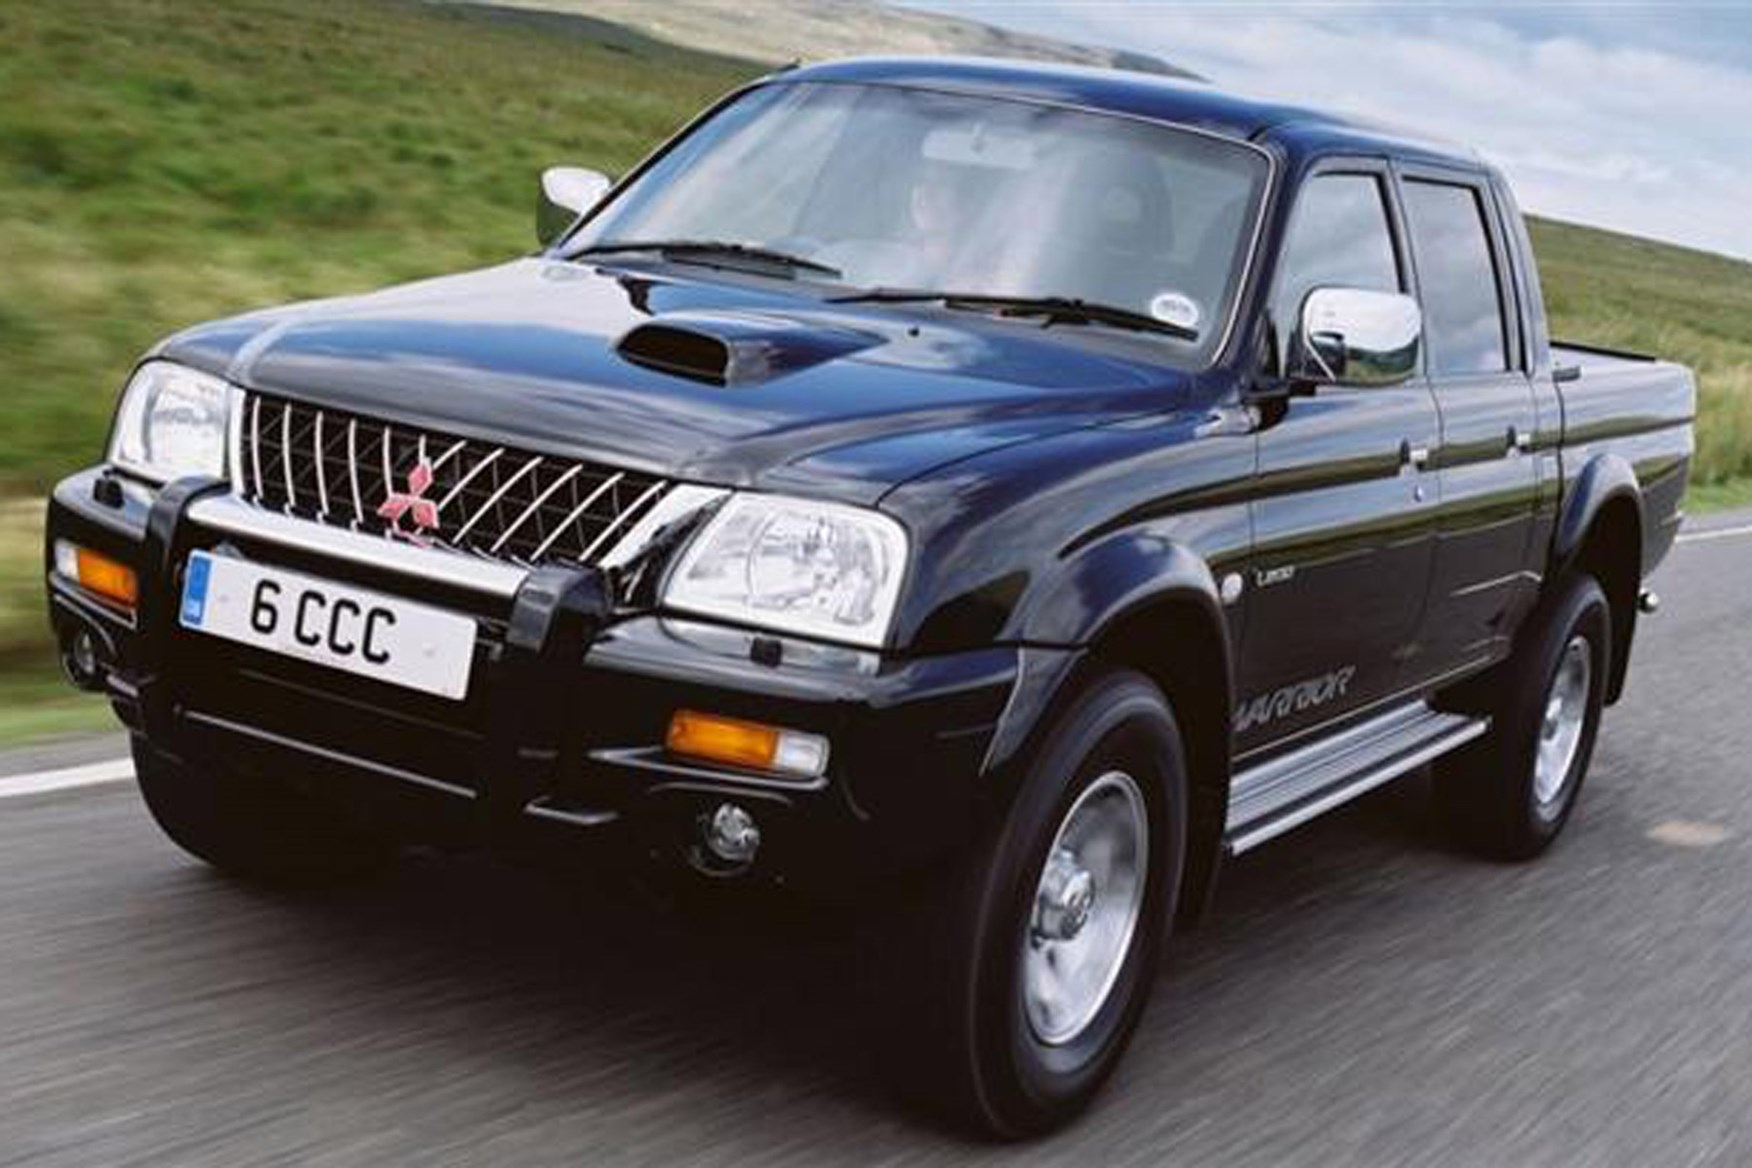 Mitsubishi L200 Pickup Review 1988 2006 Parkers 1992 Isuzu Truck Engine On Vans Exterior